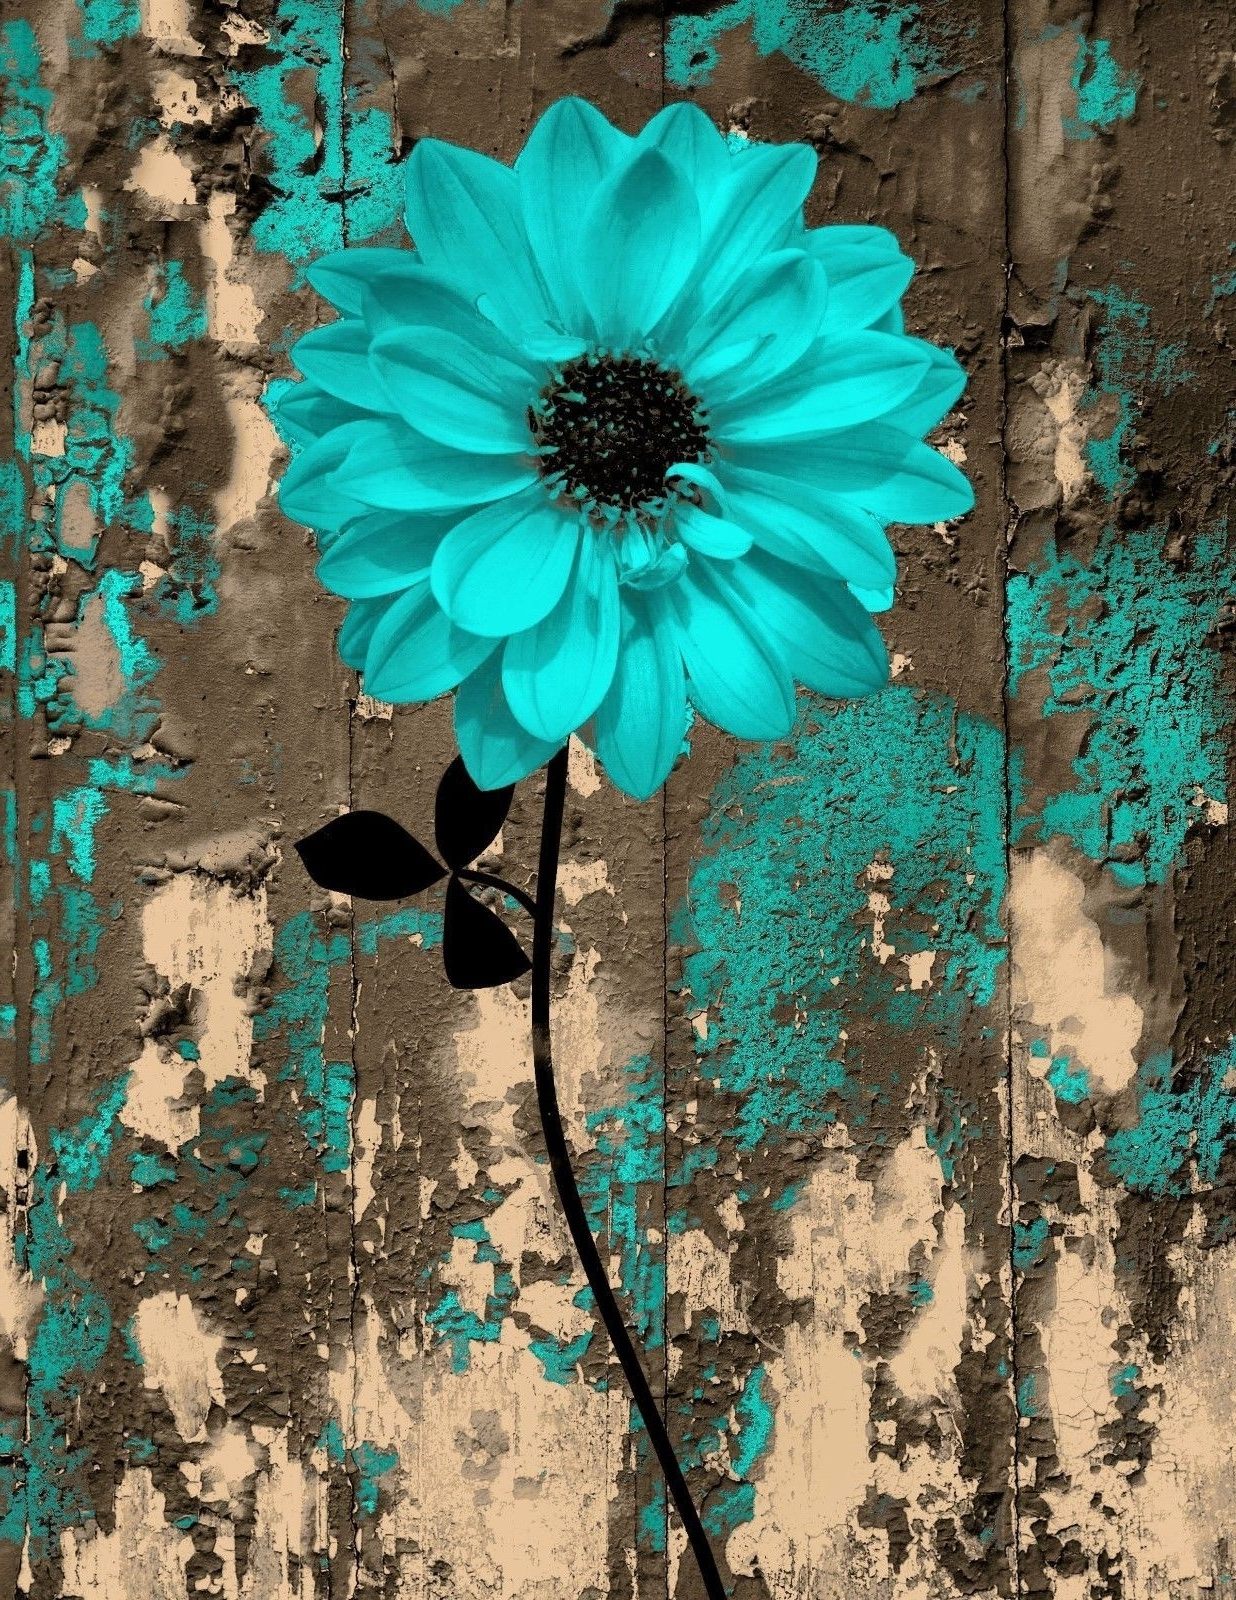 Preferred Brown And Turquoise Wall Art With Rustic Teal Brown Floral Bedroom/bathroom Wall Art Home Decor (View 10 of 15)